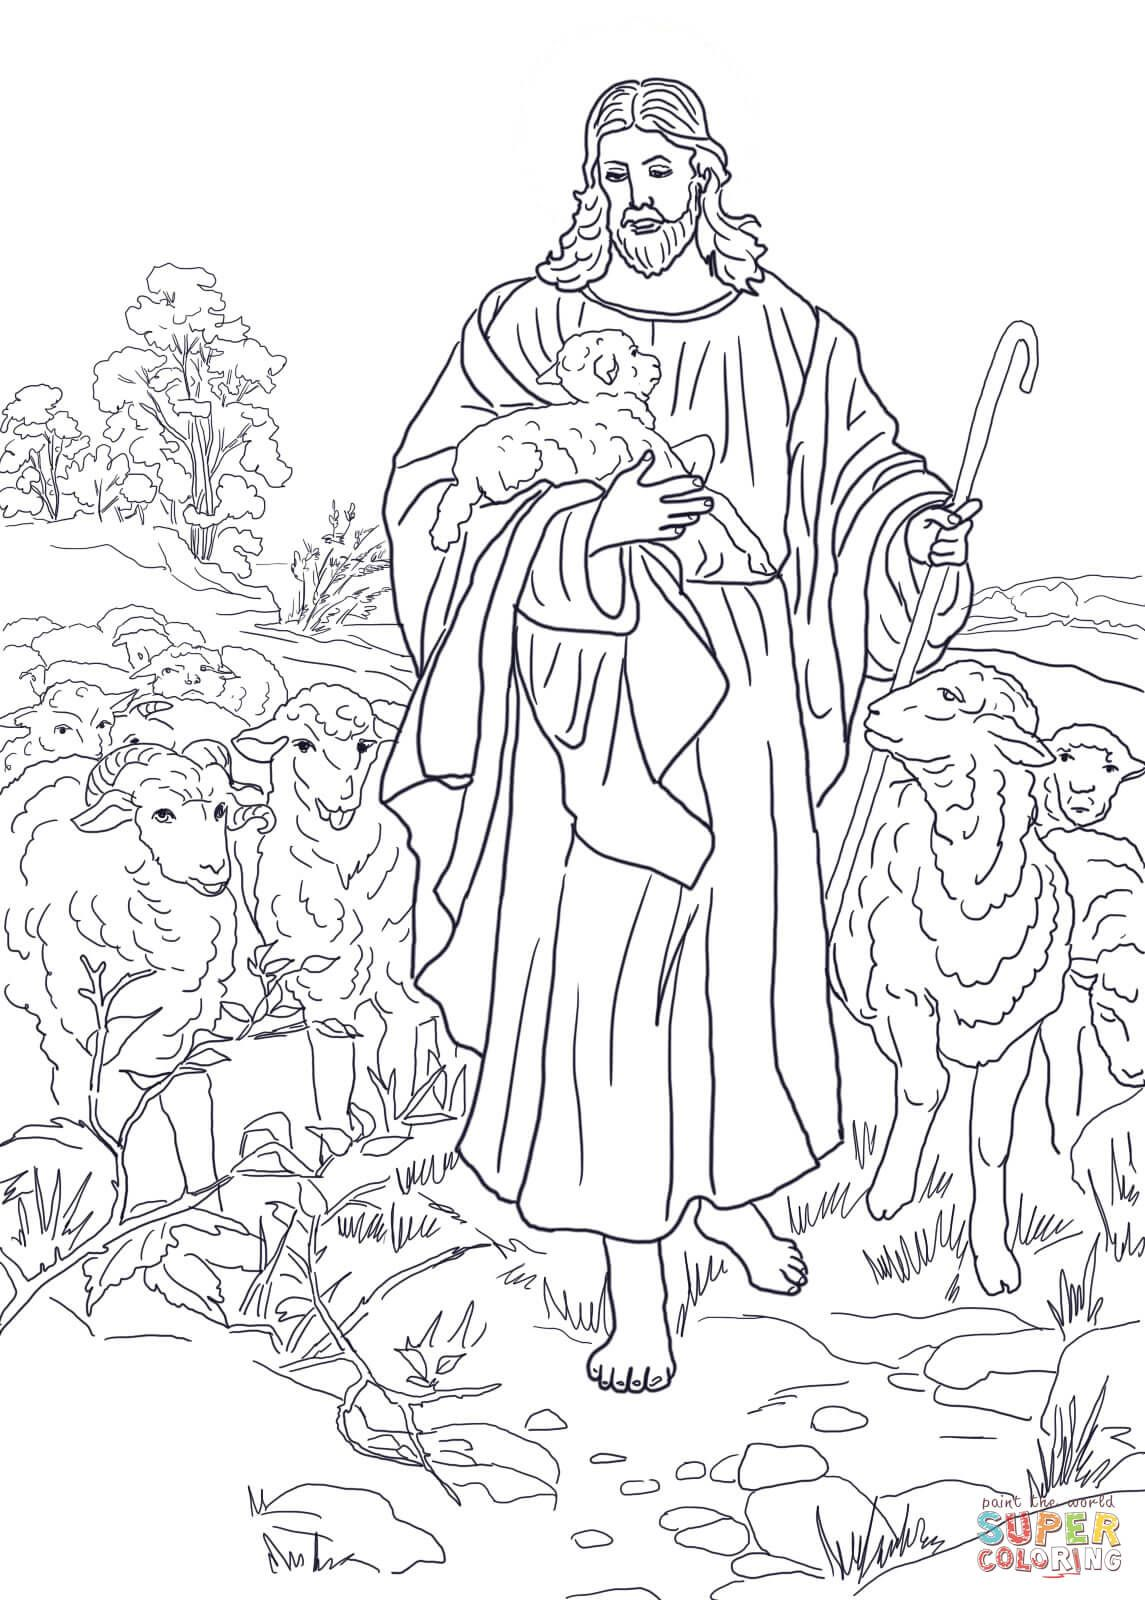 Jesus Is The Good Shepherd Coloring Page Free Printable Coloring Pages Jesus Coloring Pages Bible Coloring Pages Coloring Pages